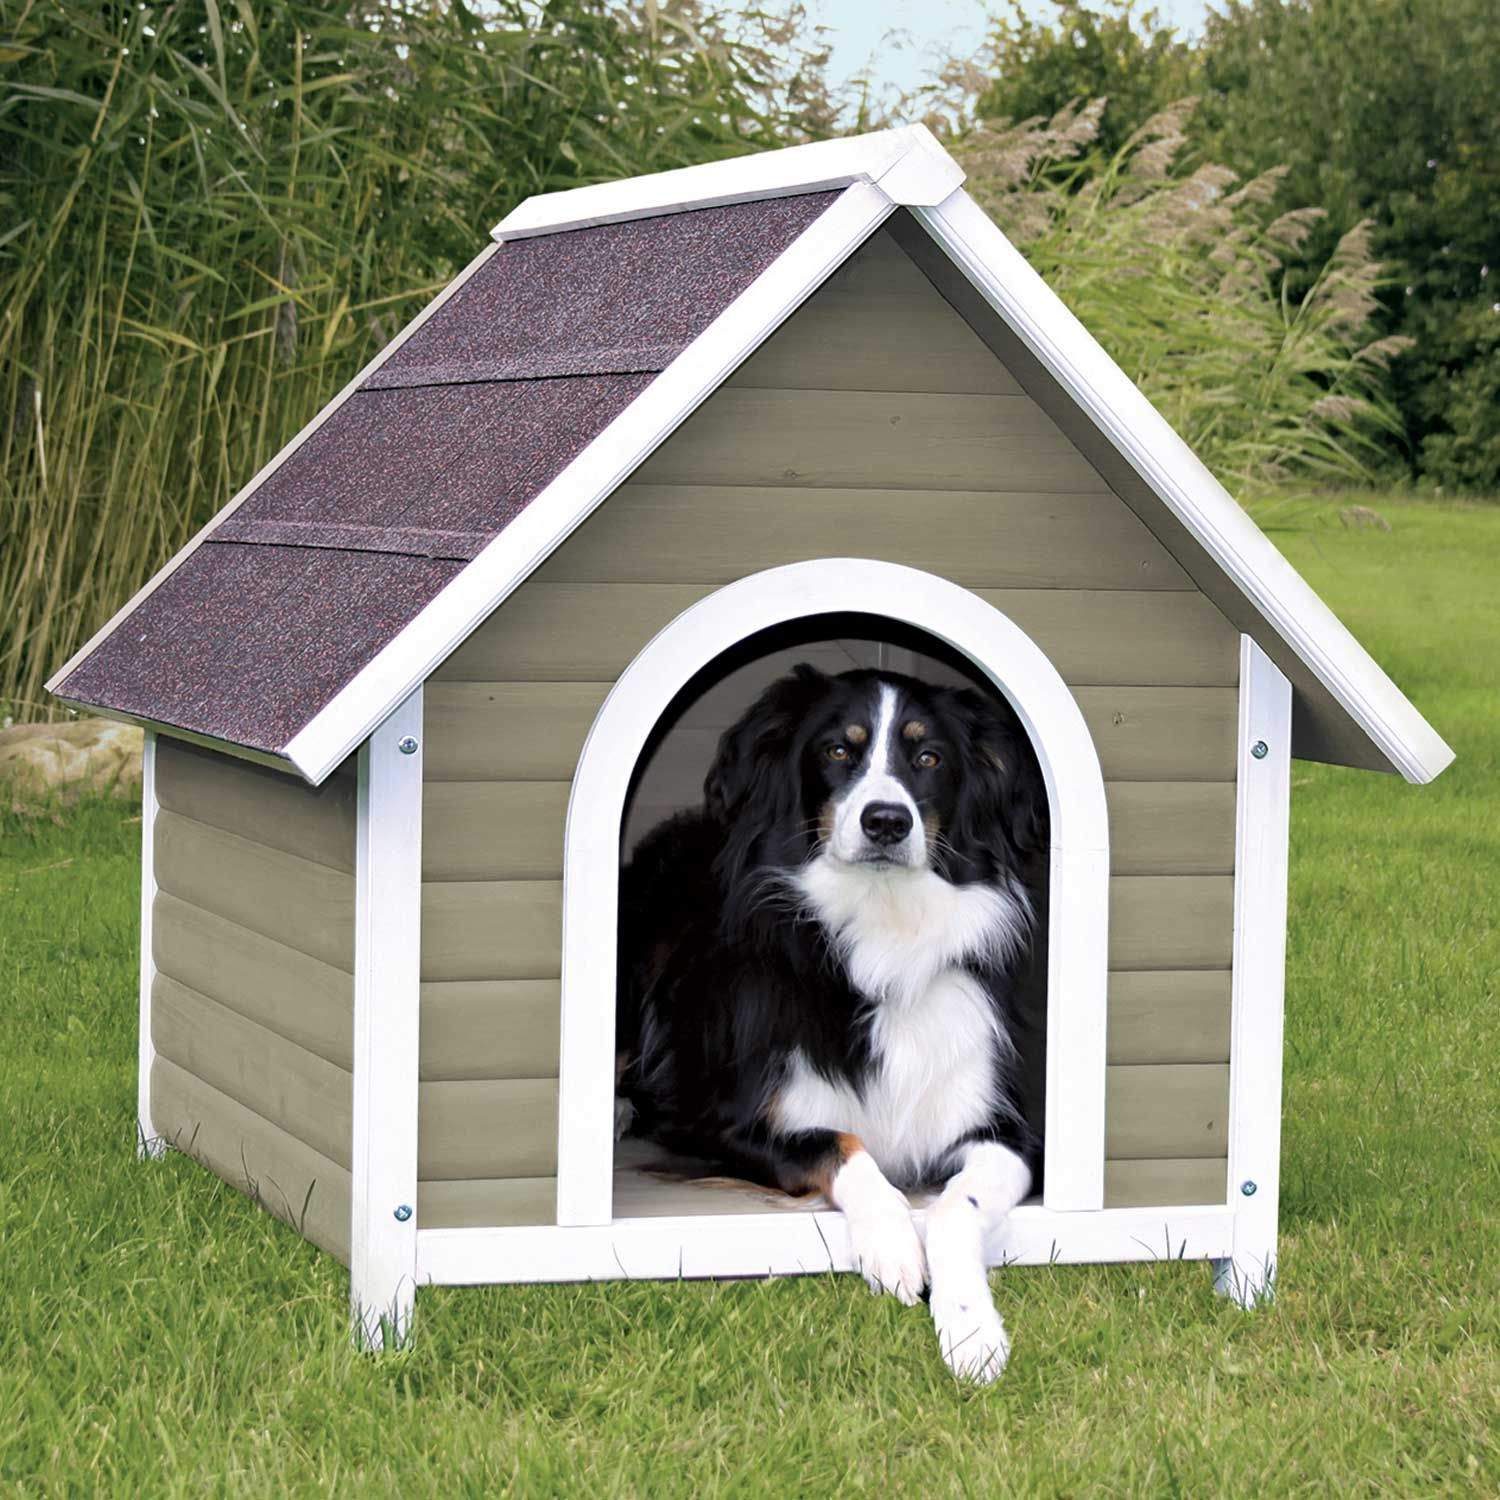 Trixie Natura Nantucket Dog House 35 5 L X 37 5 W X 42 H